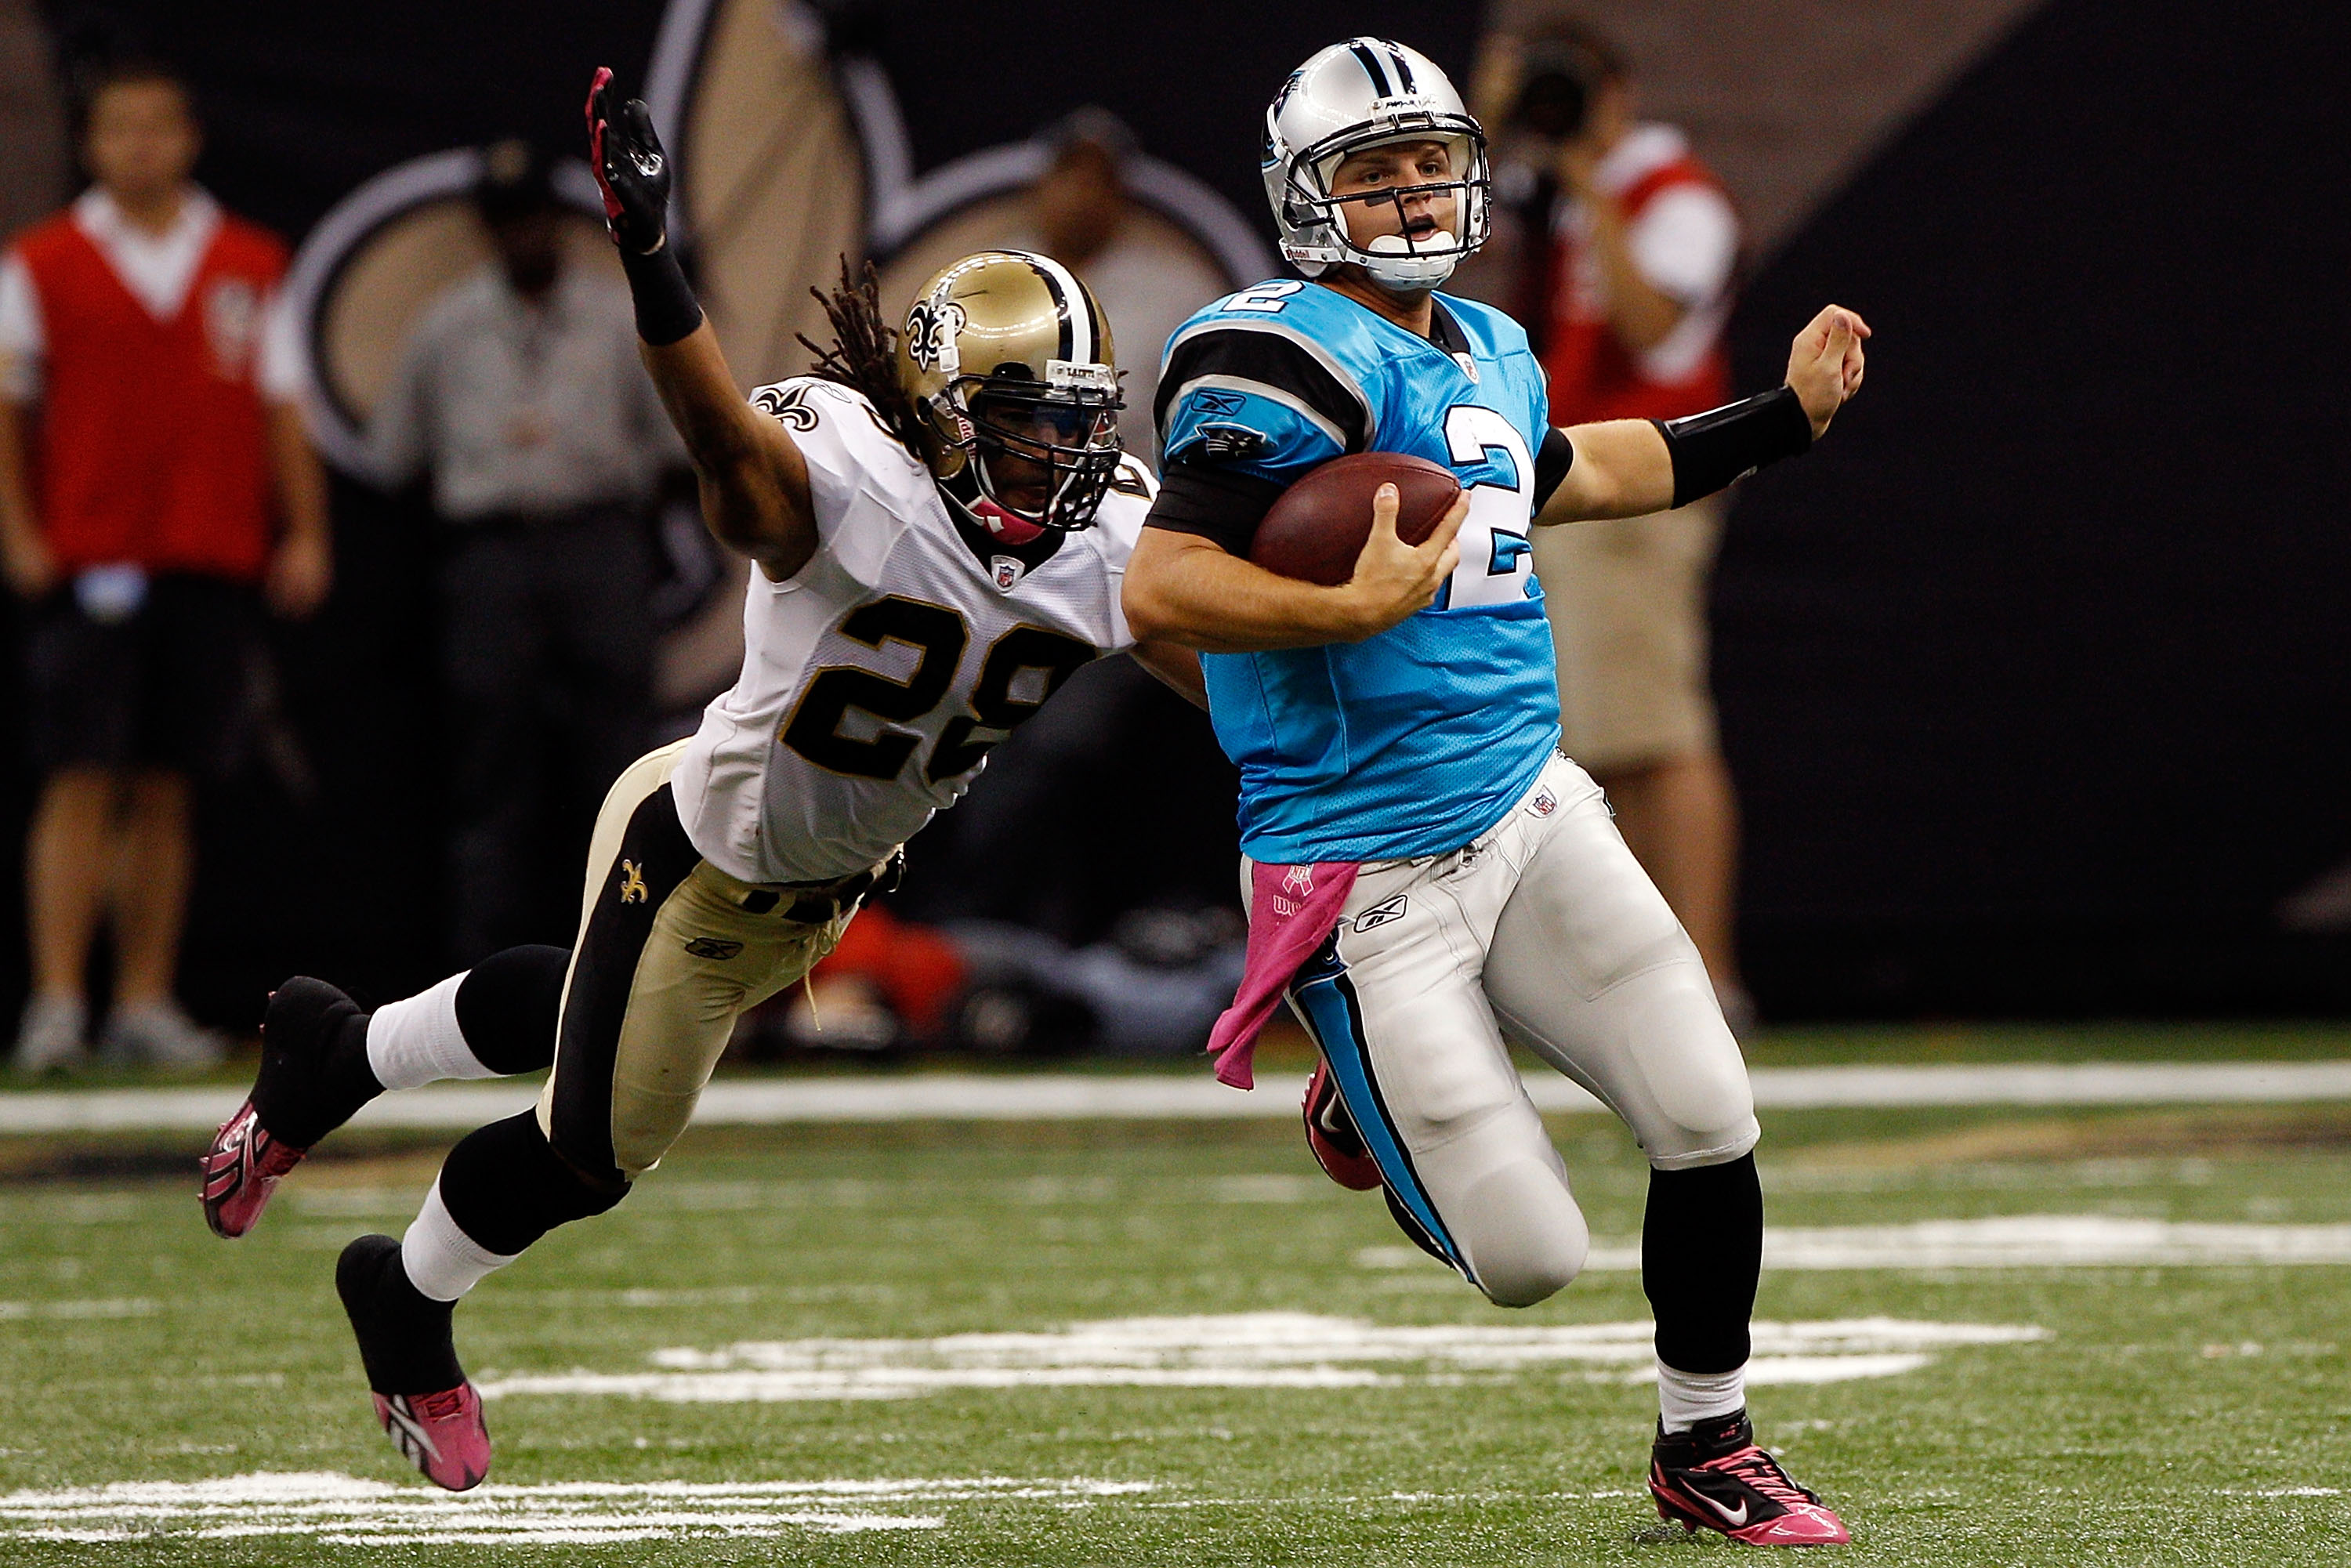 NEW ORLEANS - OCTOBER 03:  Jimmy Clausen #2 of the Carolina Panthers is tackled by Usama Young #28 of the New Orleans Saints at the Louisiana Superdome on October 3, 2010 in New Orleans, Louisiana.  (Photo by Chris Graythen/Getty Images)